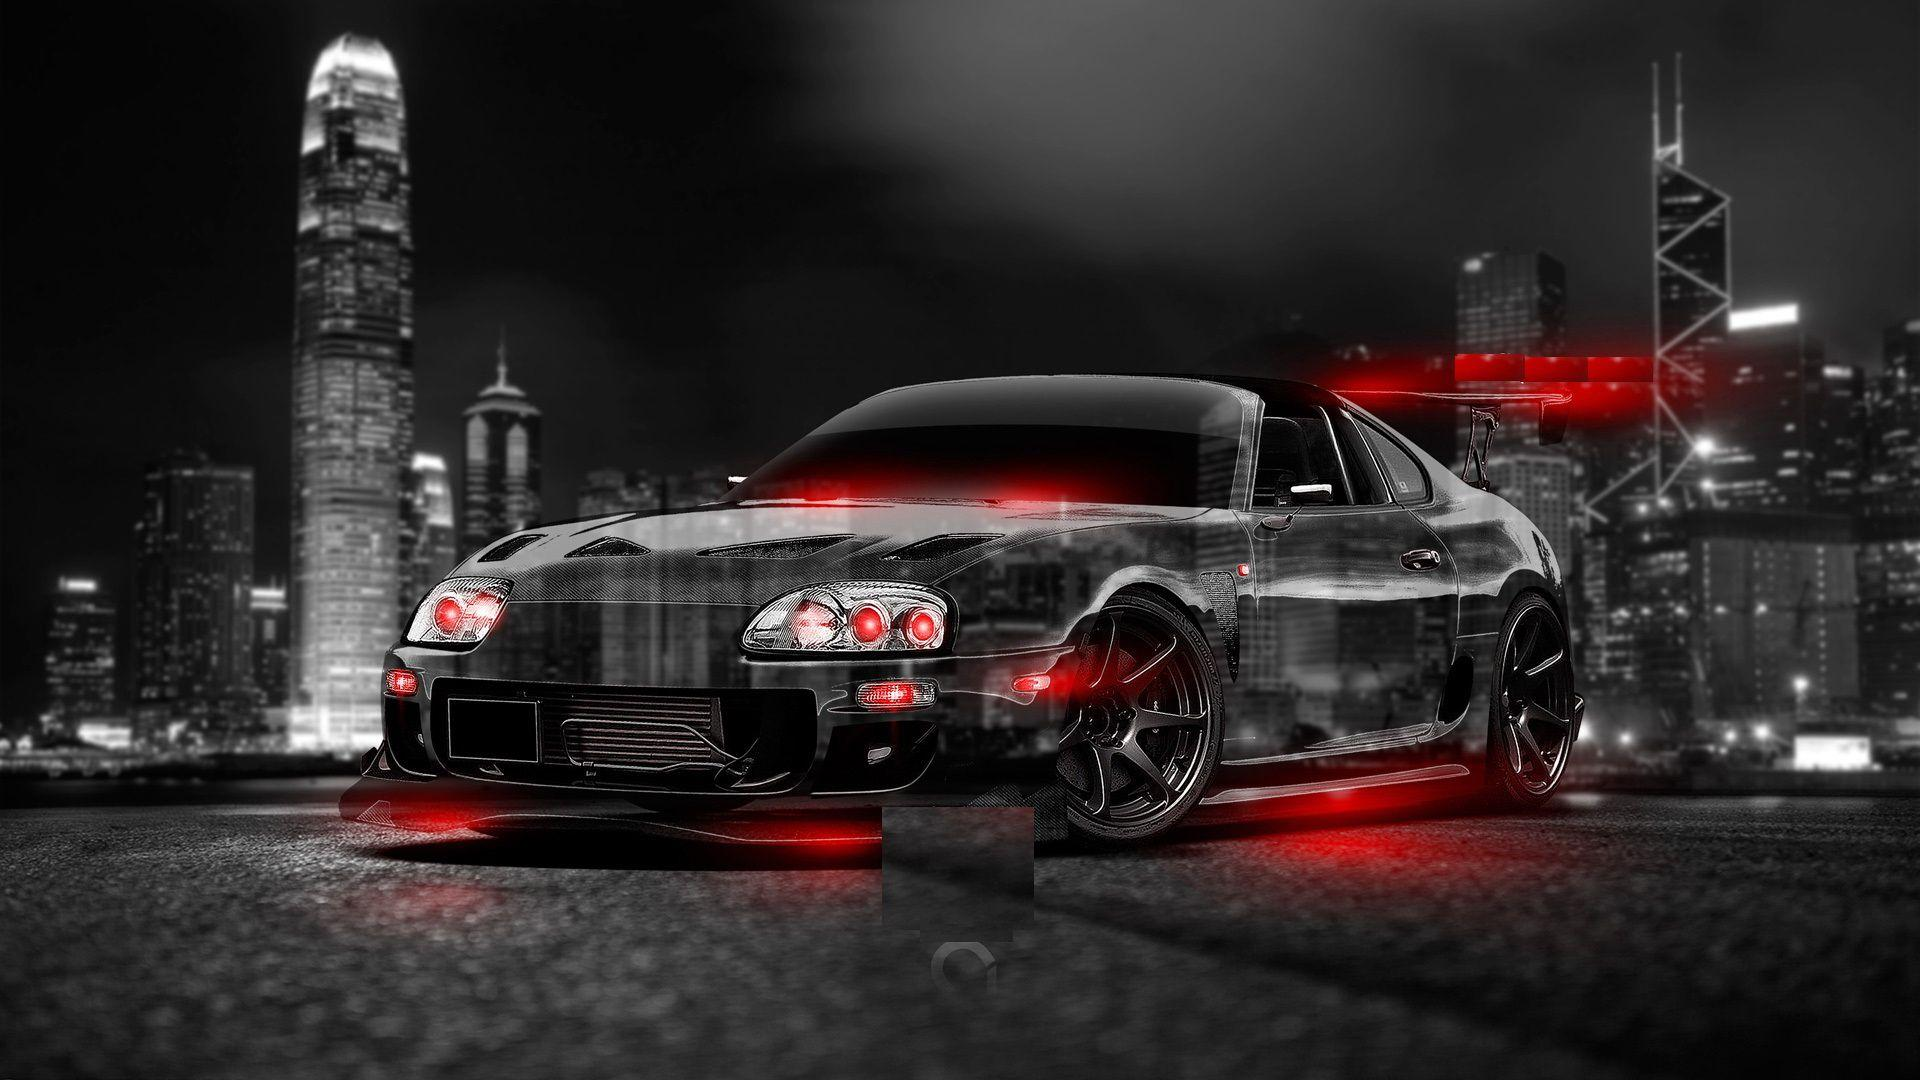 Toyota Supra Wallpapers Iphone ,